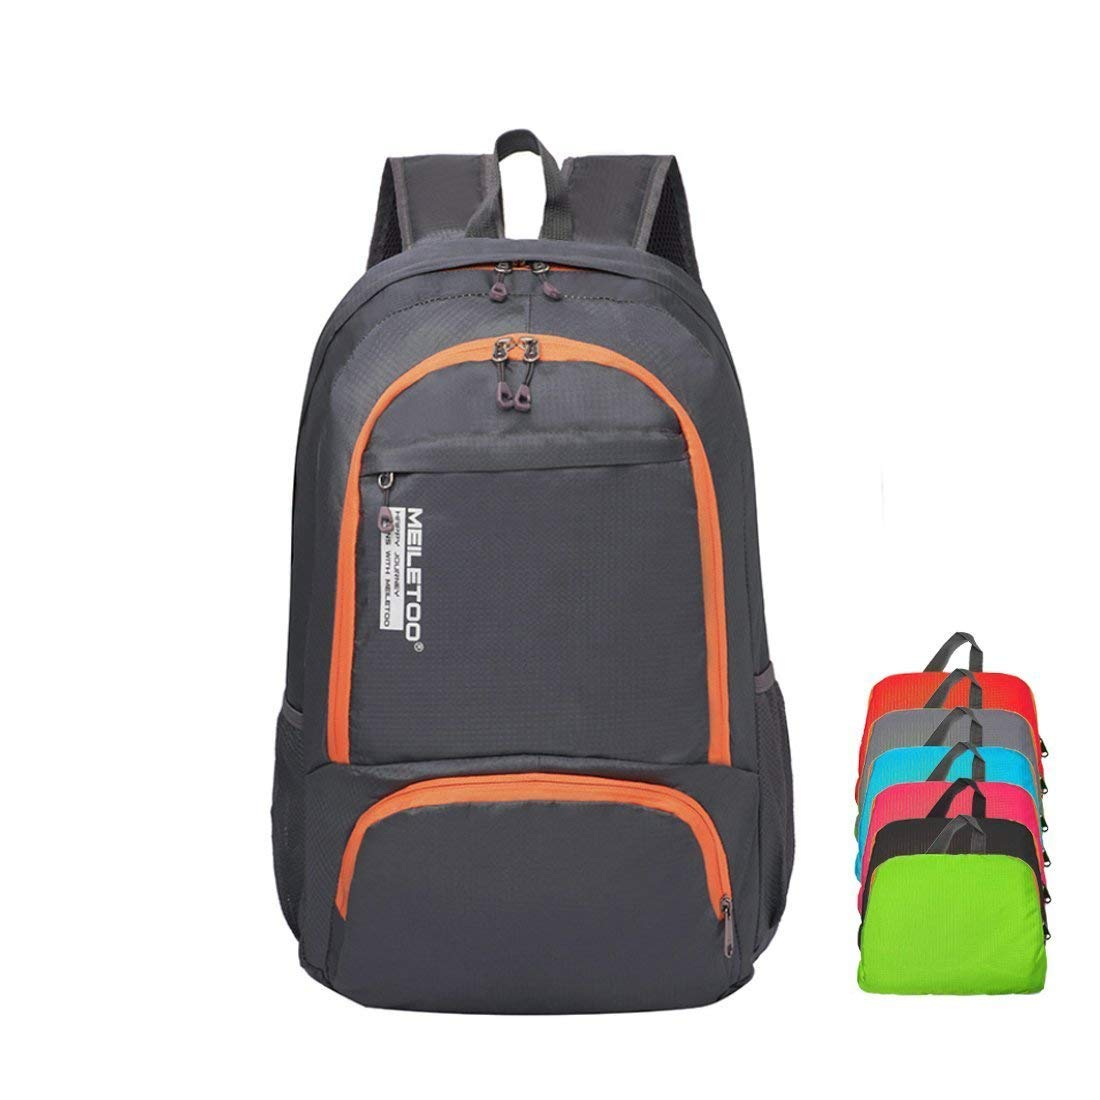 166114fbb0 Get Quotations · Bagspert Foldable Backpack Ultra Lightweight Travel 30L  Daypack Water Resistant Nylon Day Bag Packable in Pouch